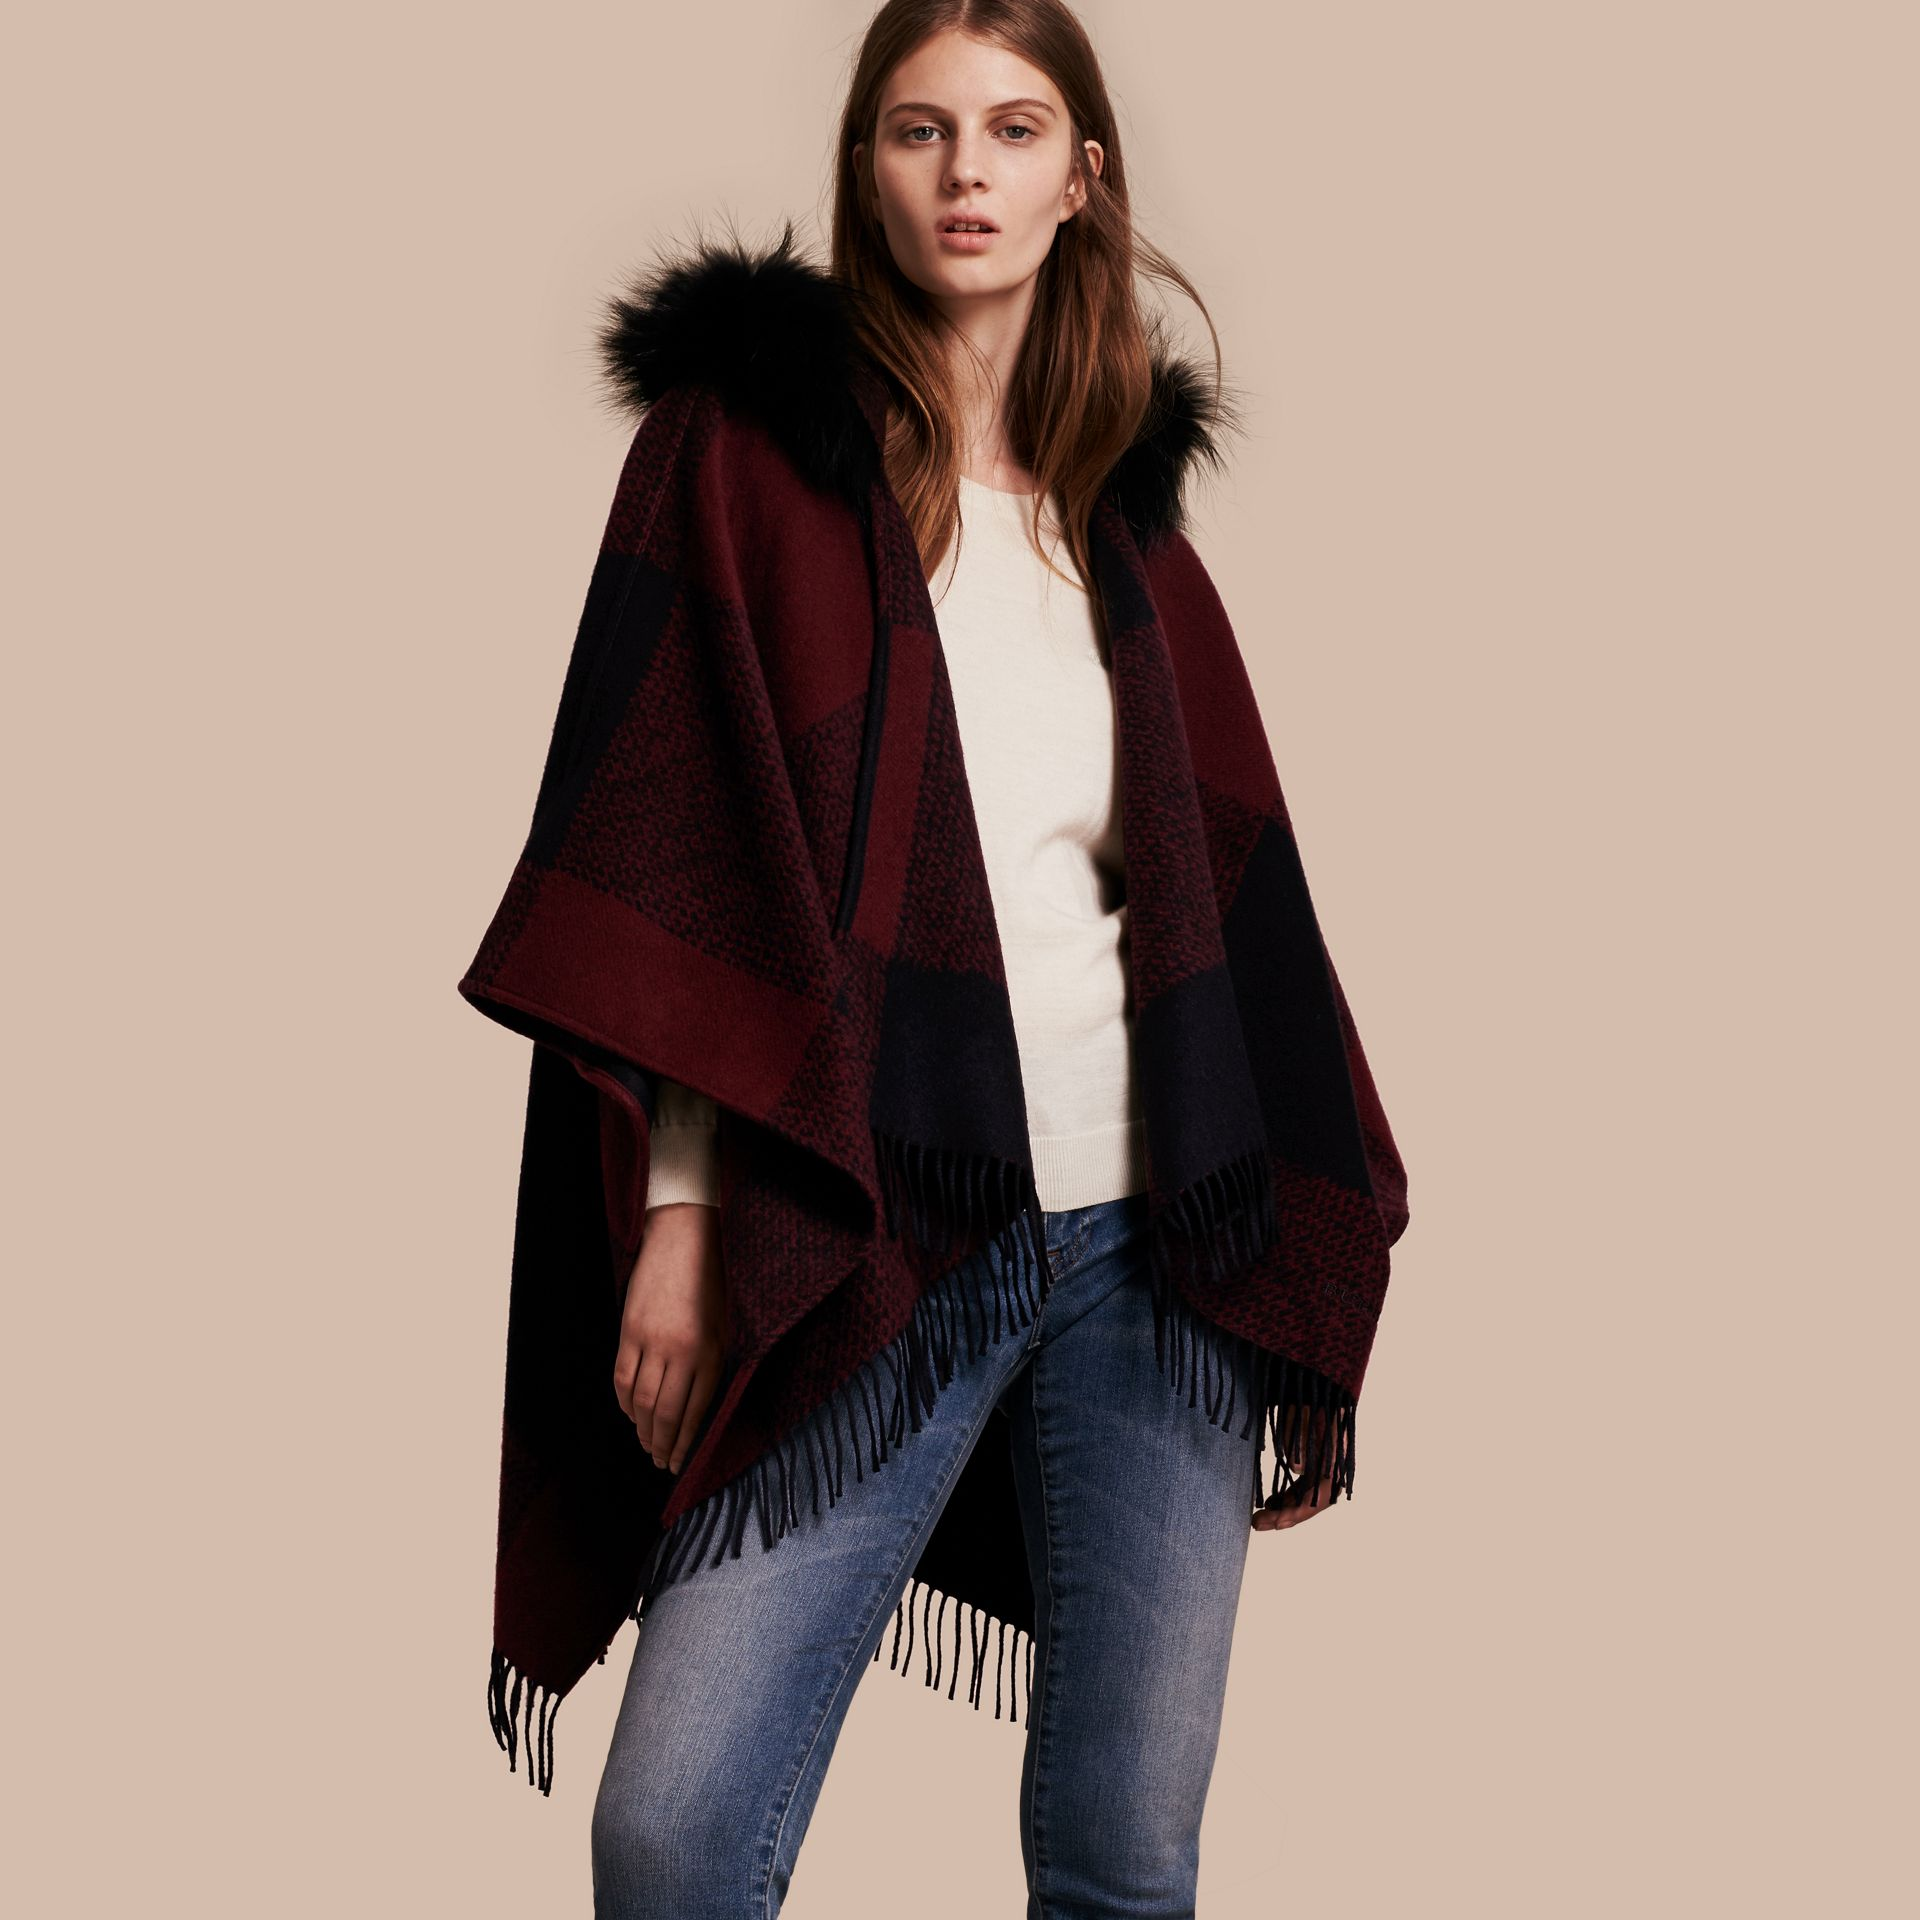 Claret Fur-trimmed Buffalo Check Wool Cashmere Poncho Claret - gallery image 1